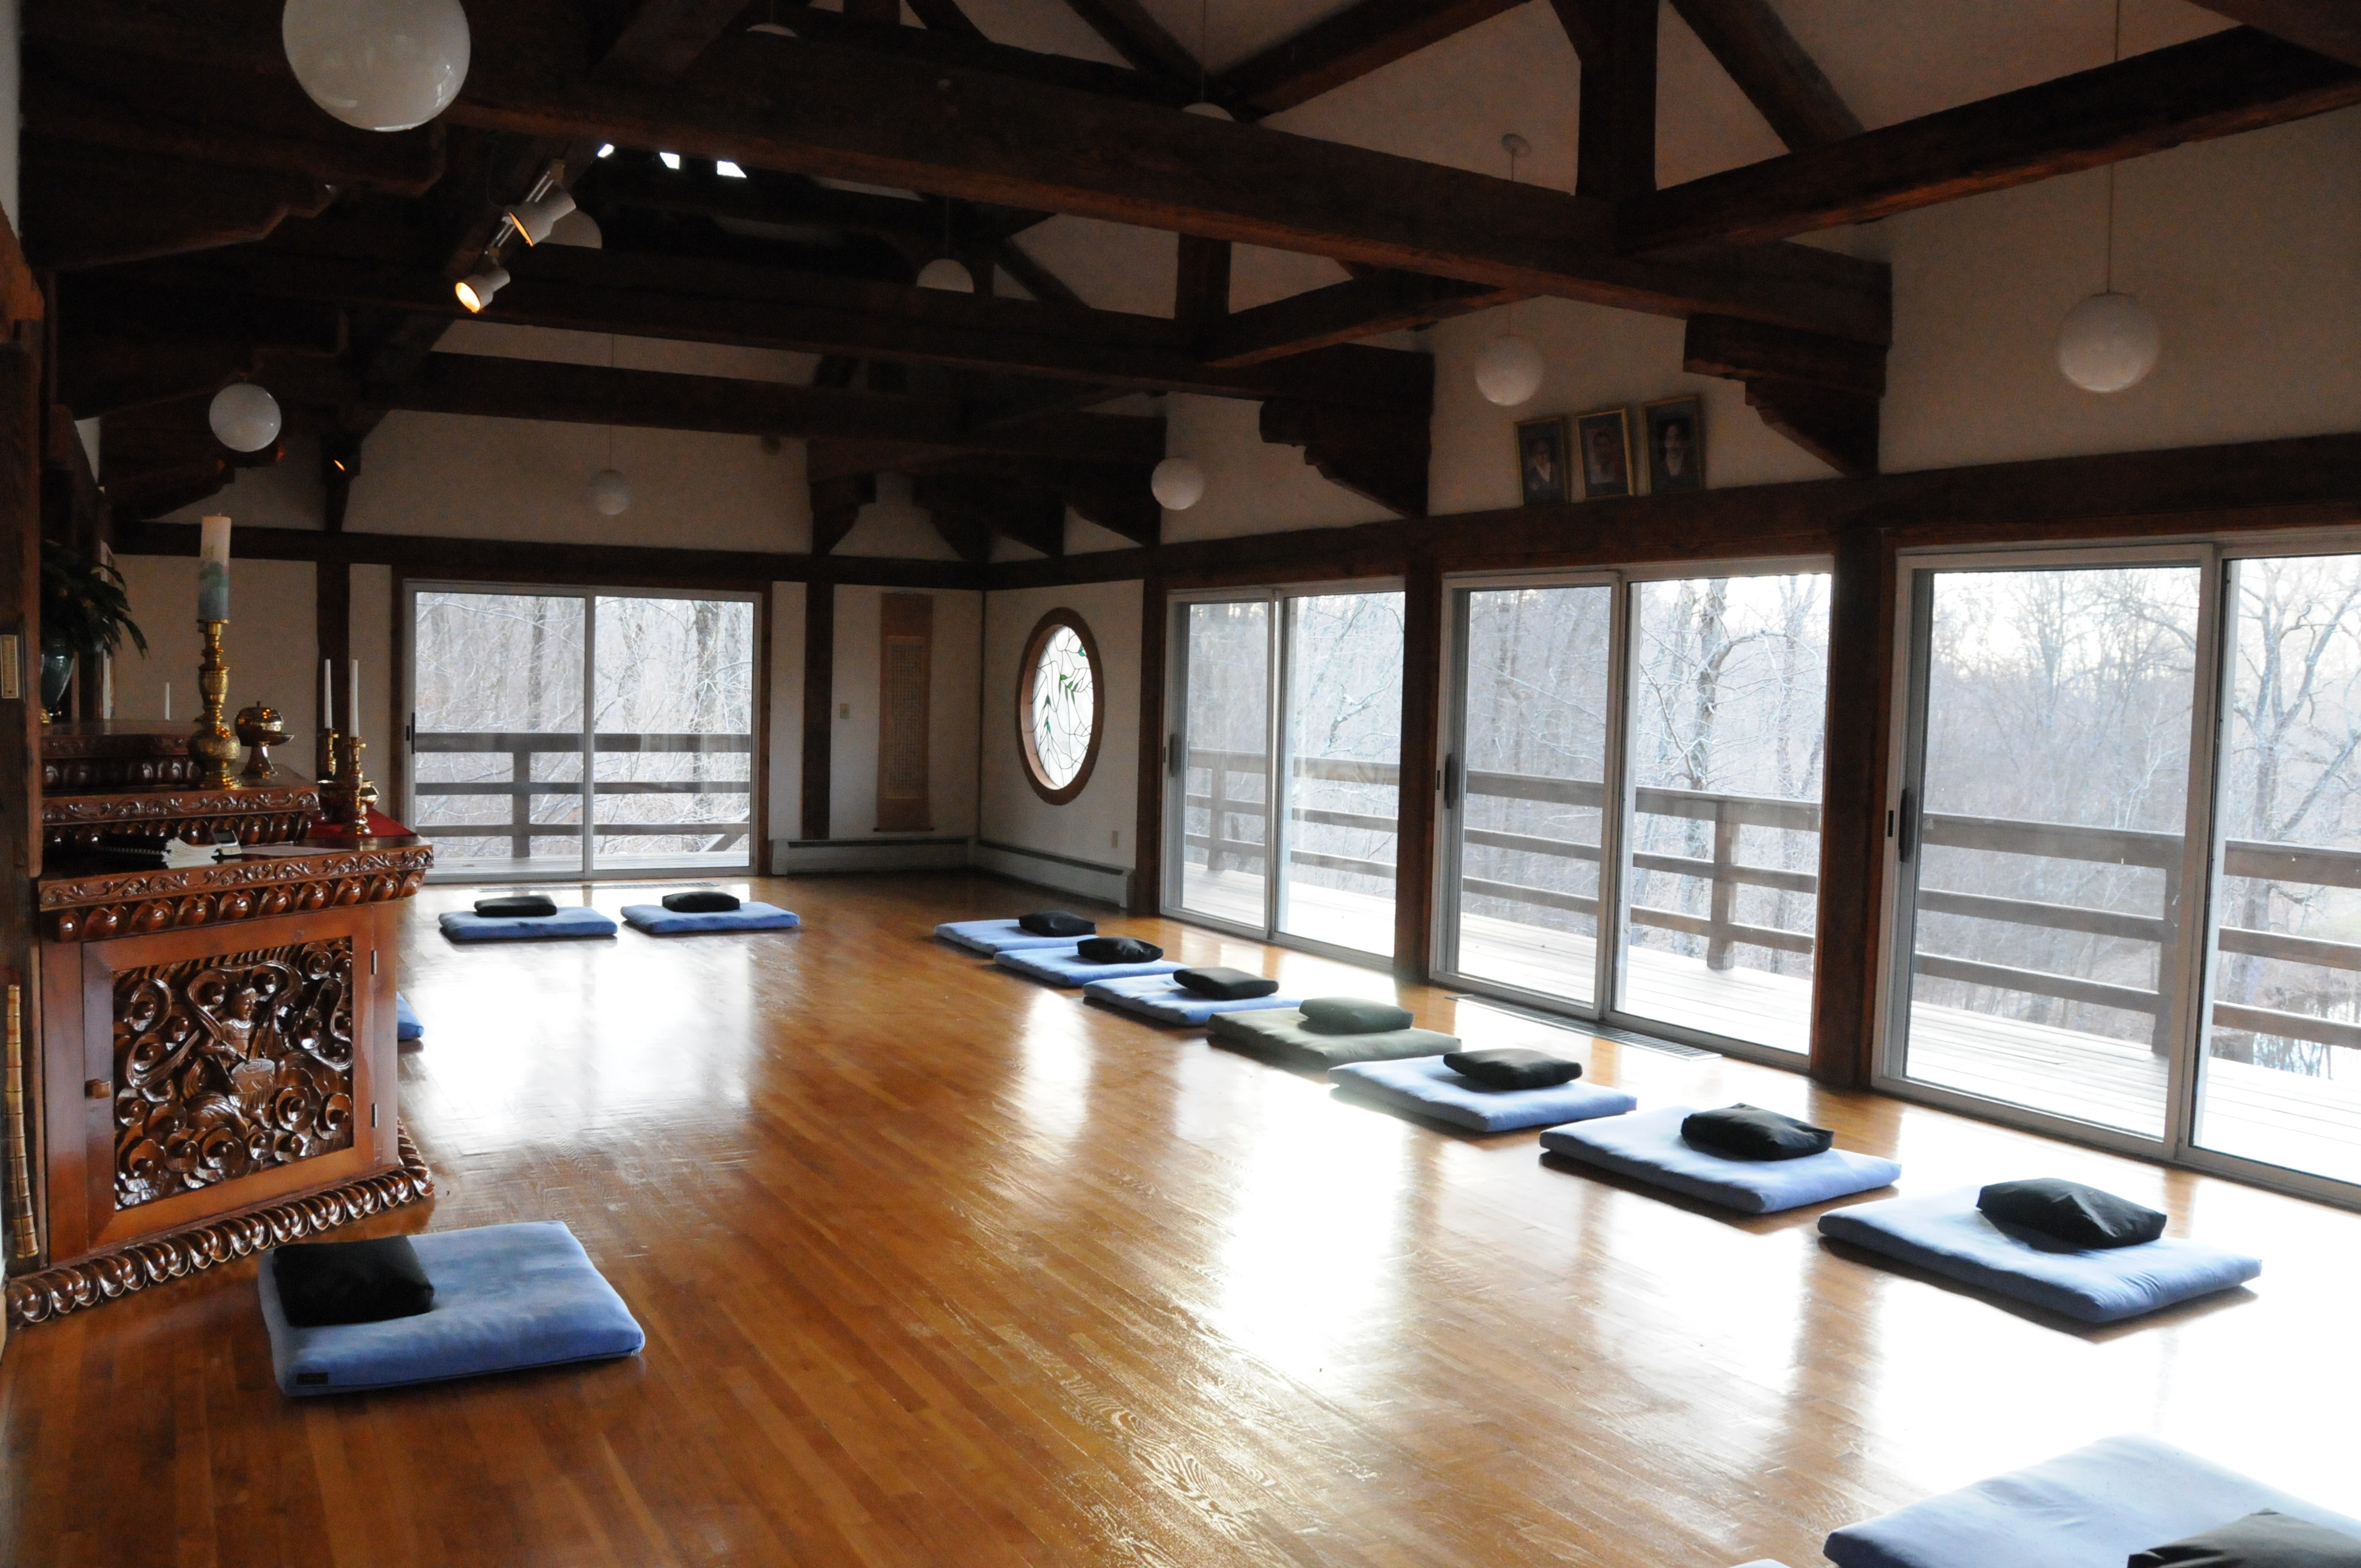 Group and event rentals providence zen center for Rent a center living room groups